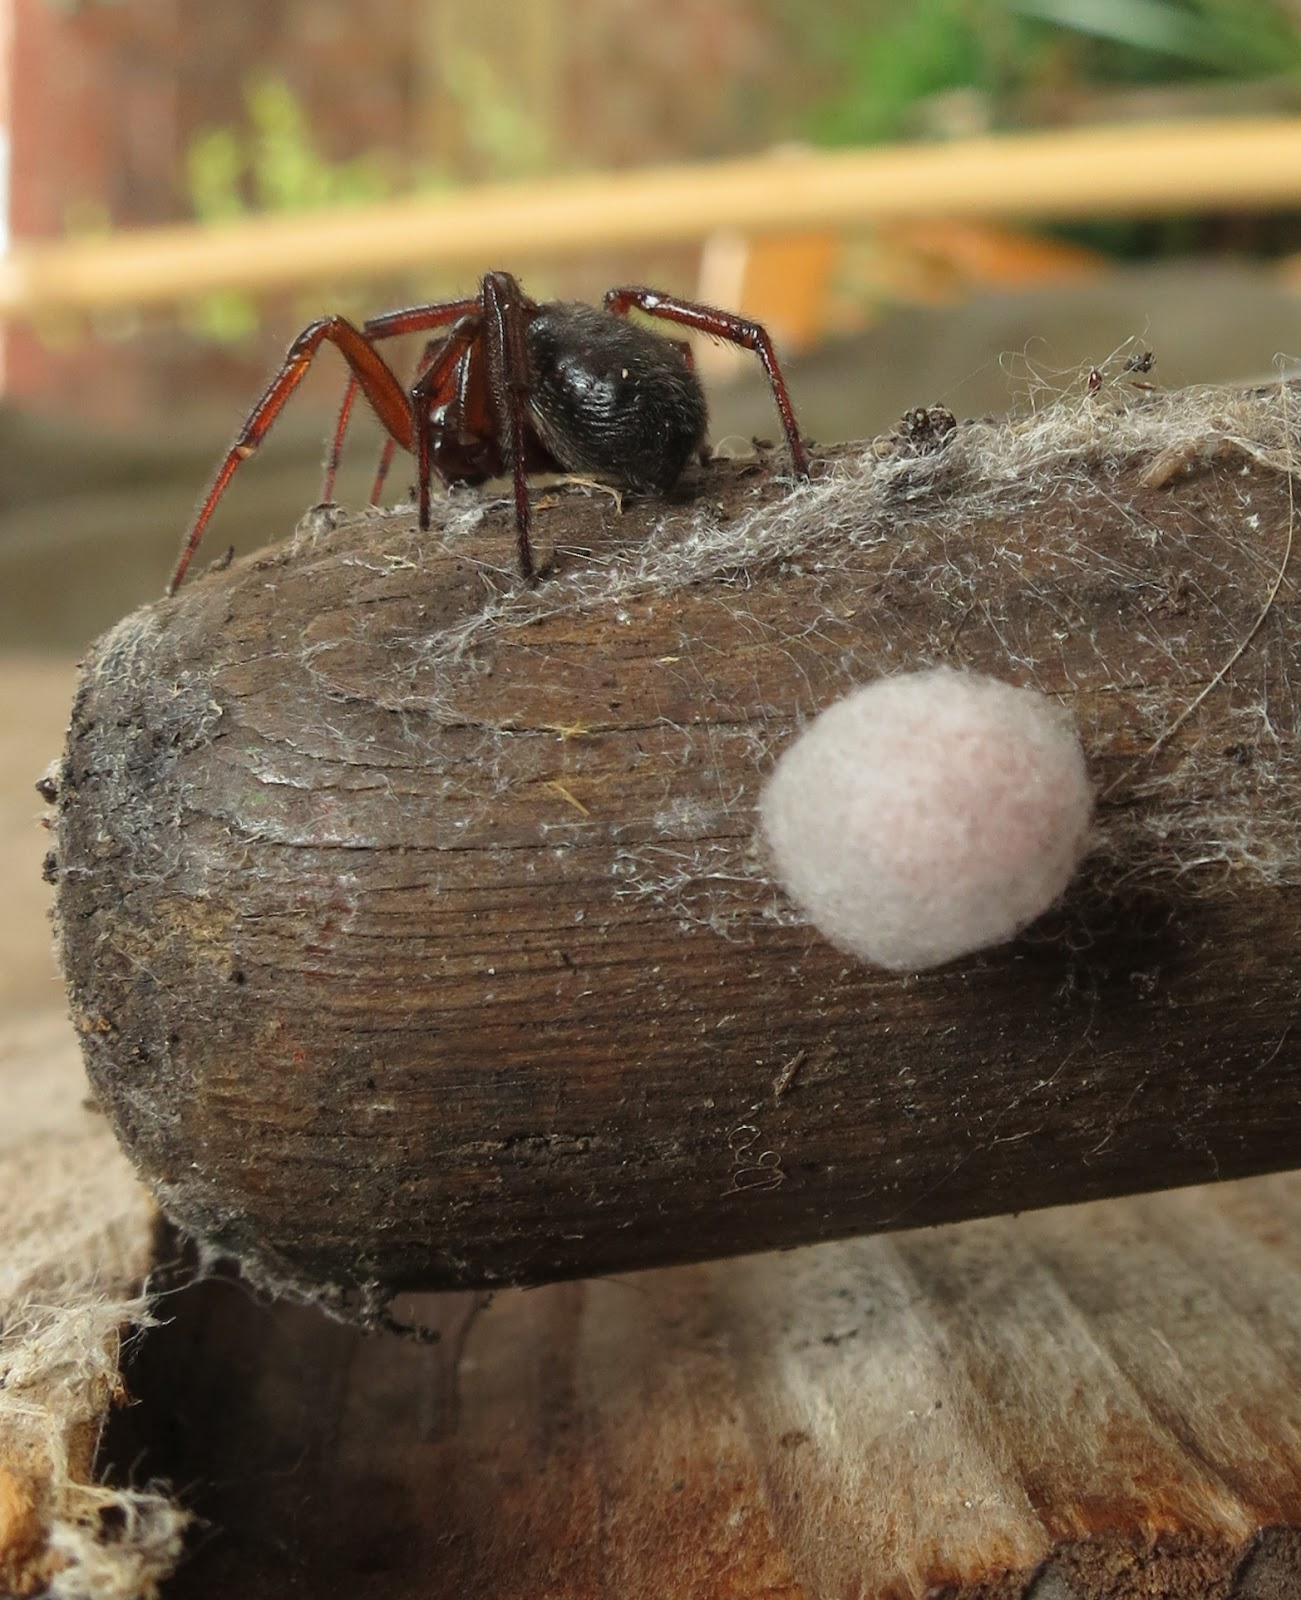 Spider with face away from camera on a broom handle where it has its ball of eggs